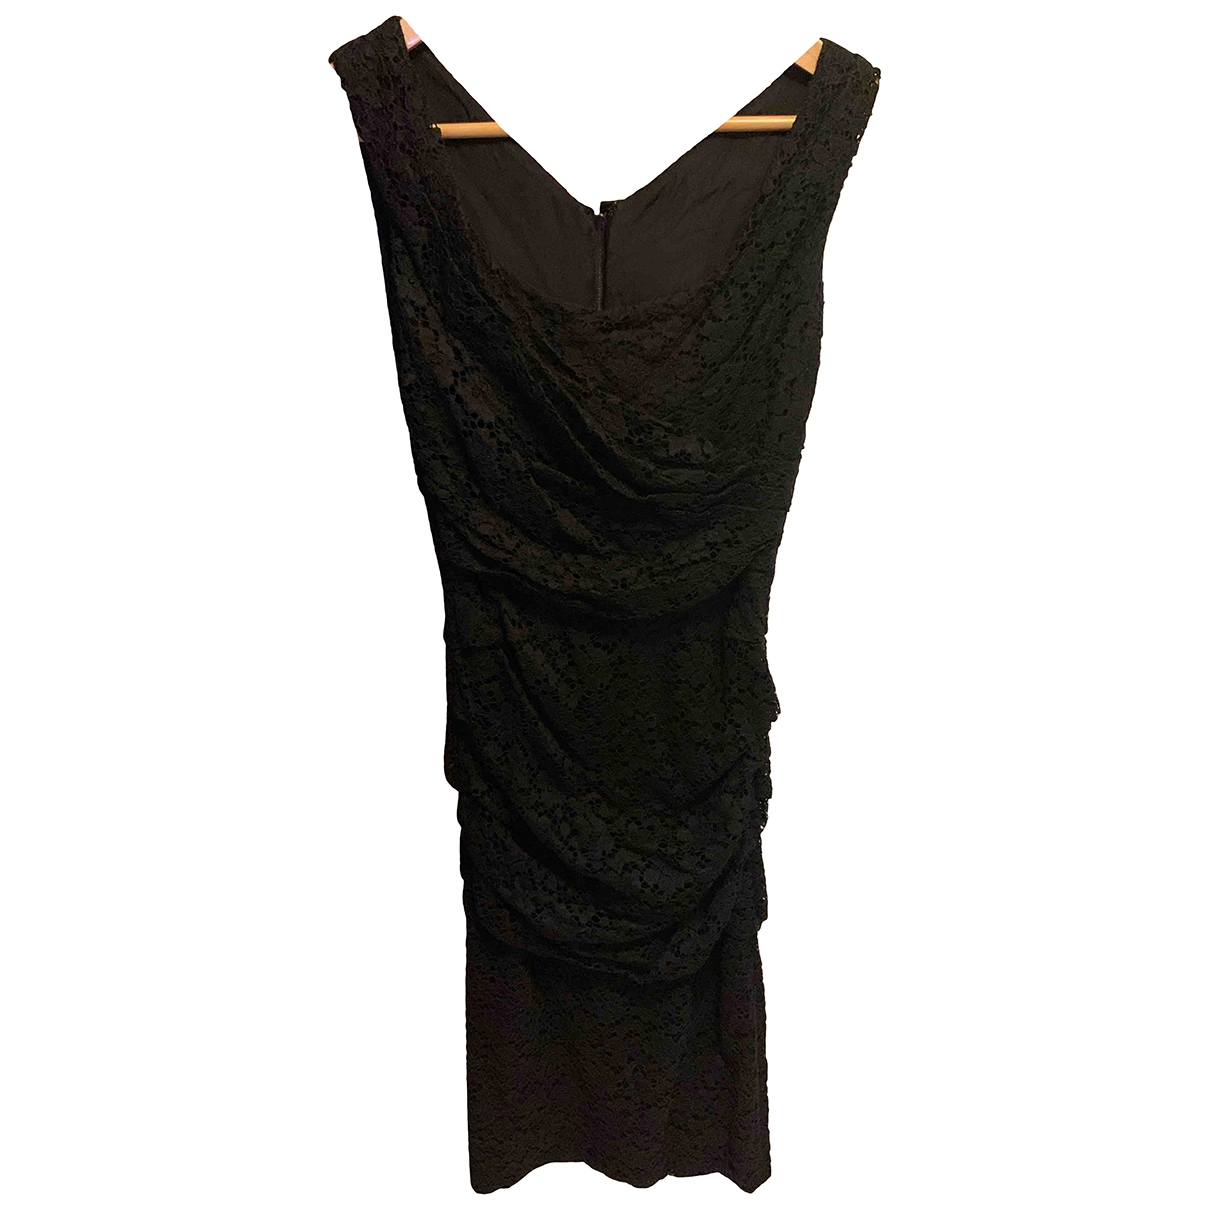 Dolce & Gabbana \N Black Cotton dress for Women 36 IT